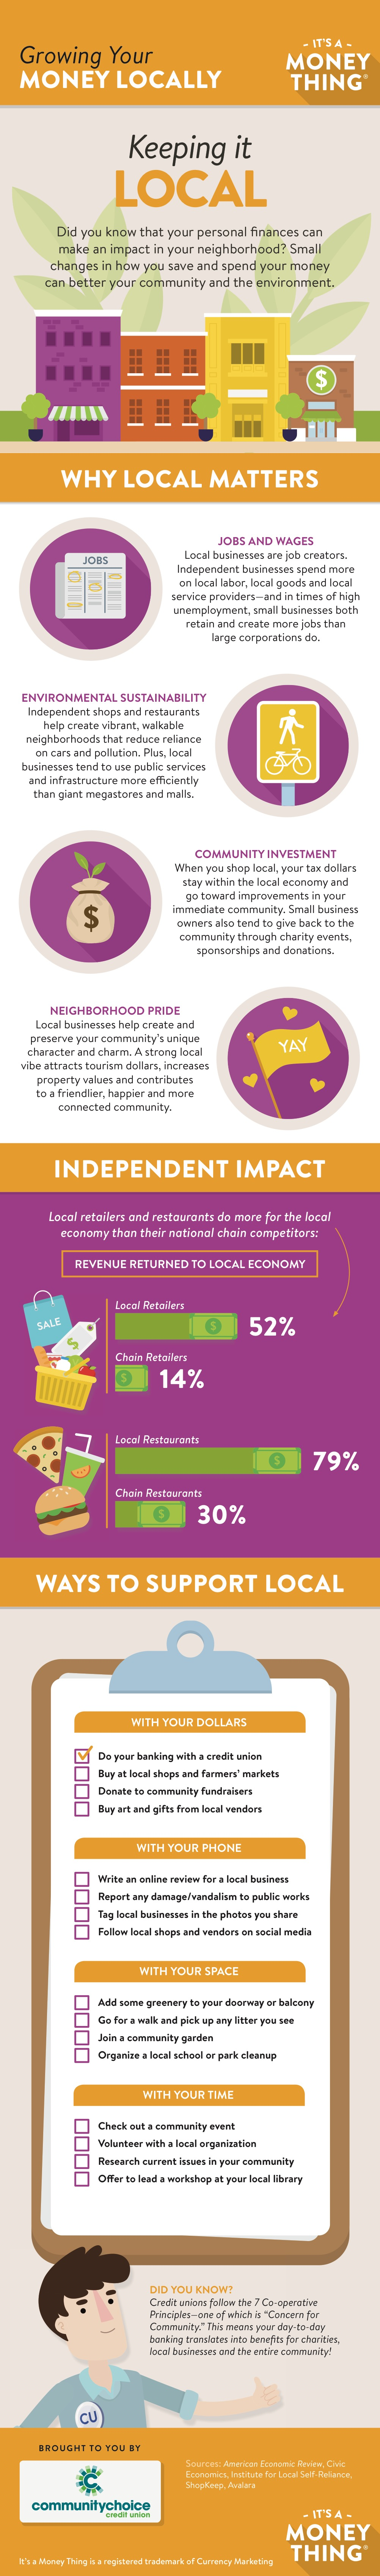 Grow your money locally infographic